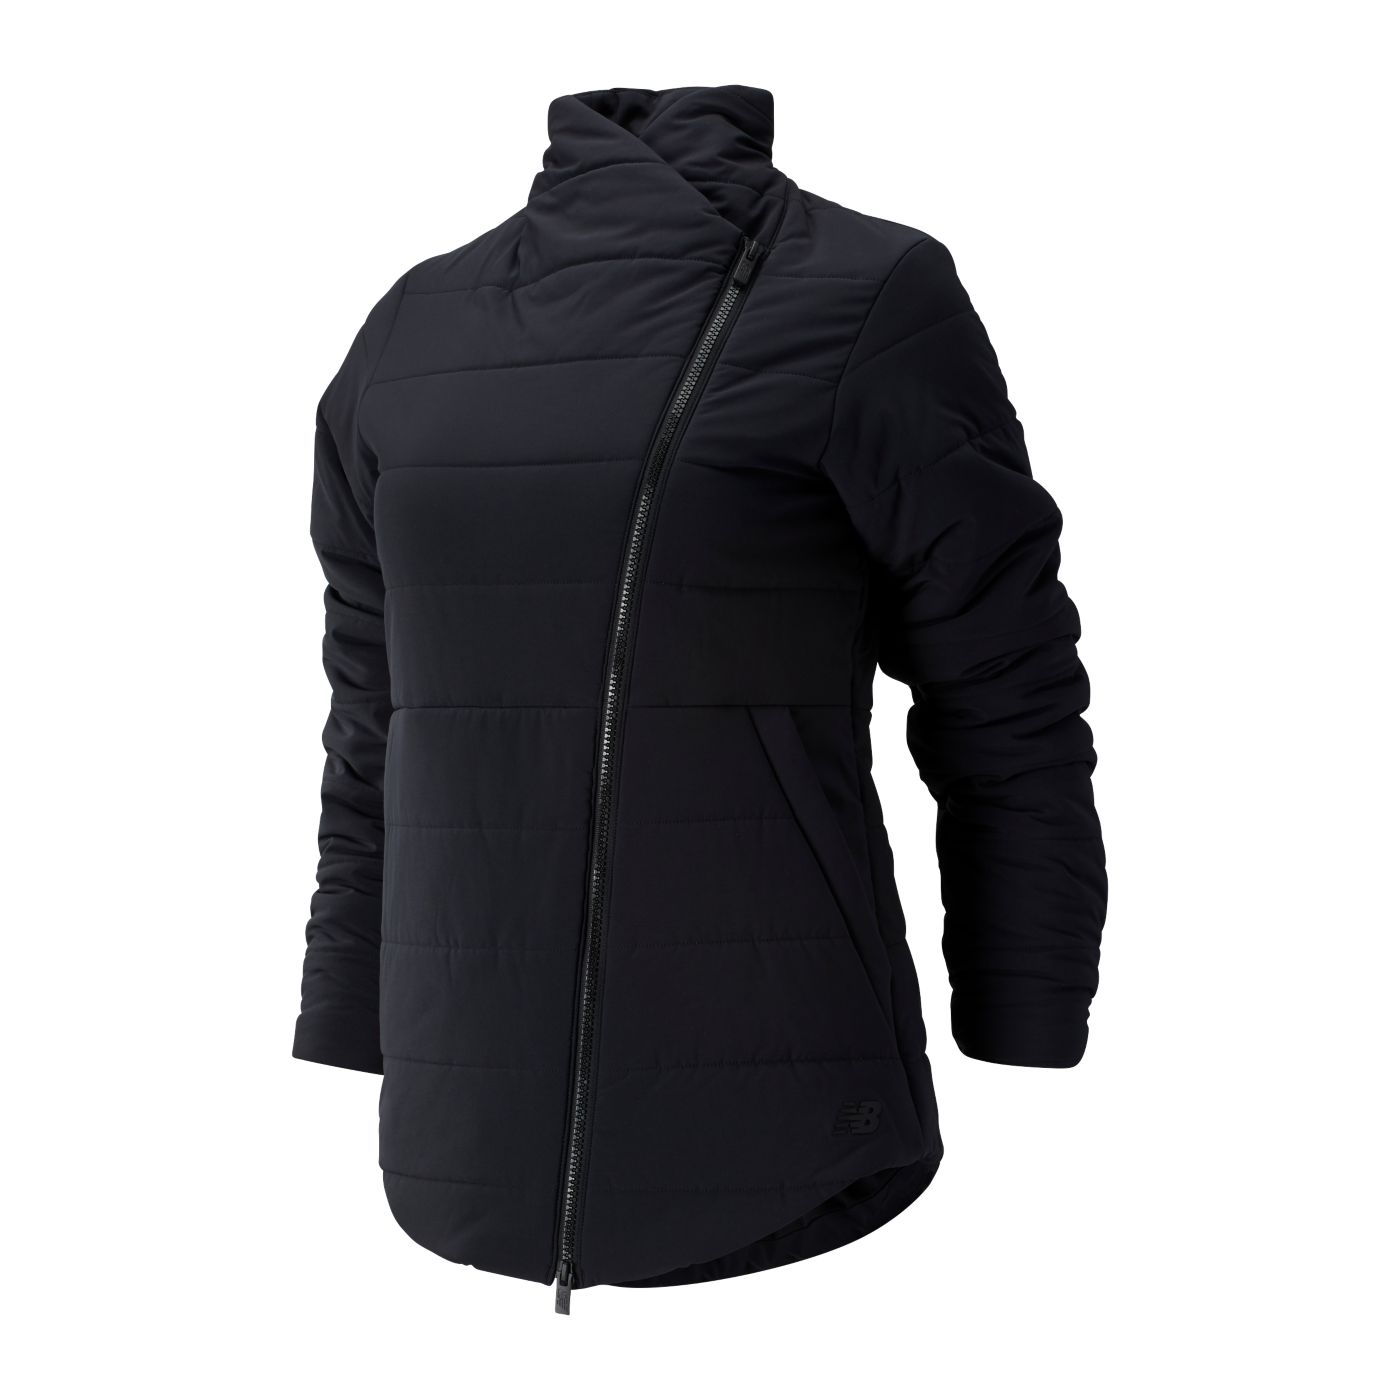 New Balance Women's Heat Flex Asymmetrical Jacket